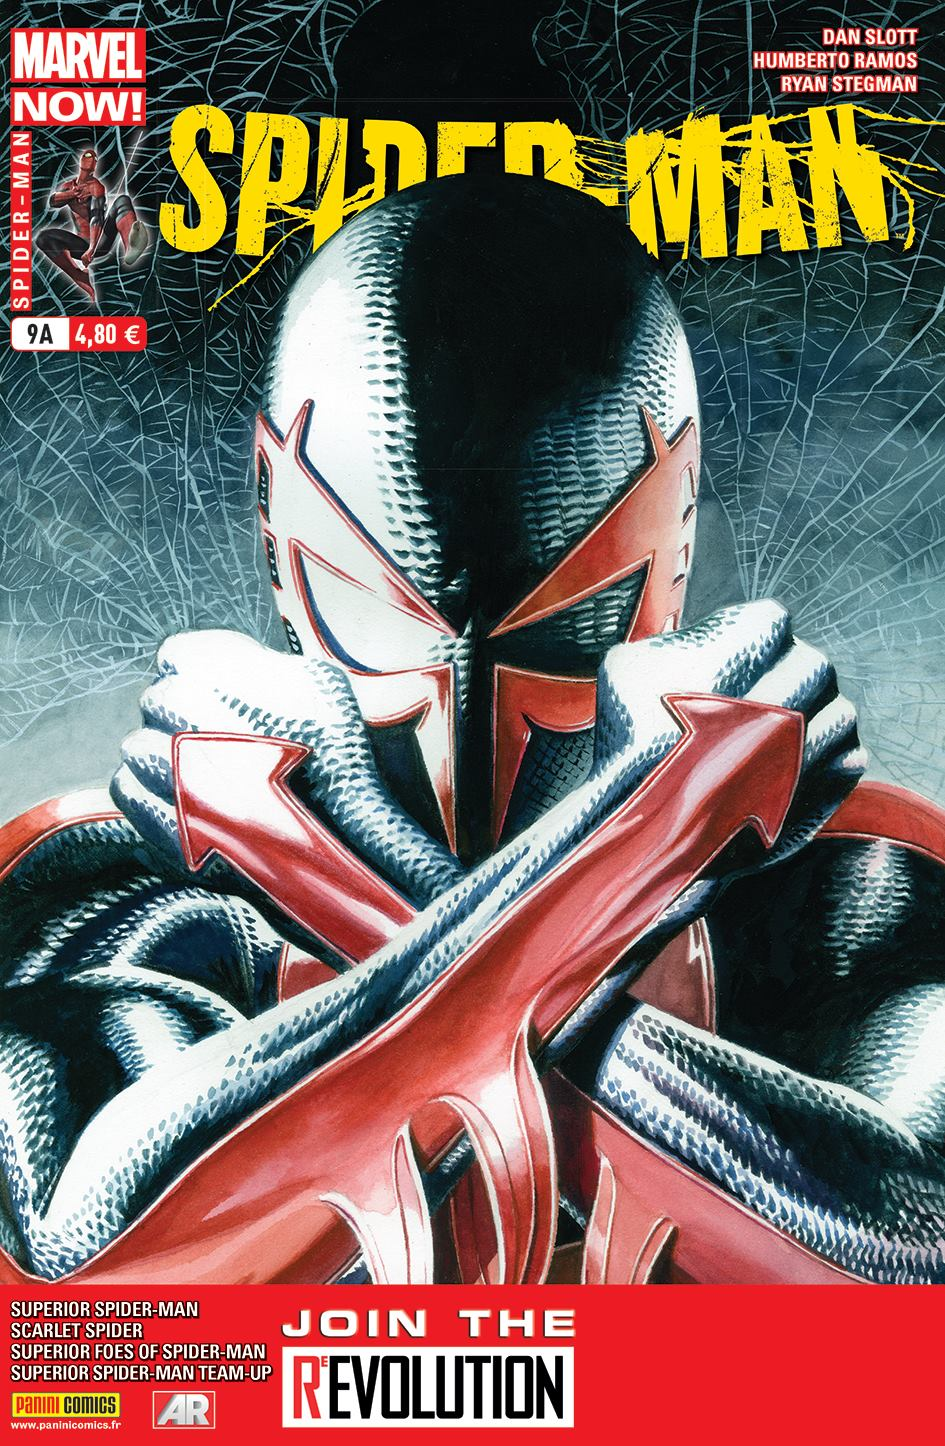 SPIDER-MAN 9 (Couv A)